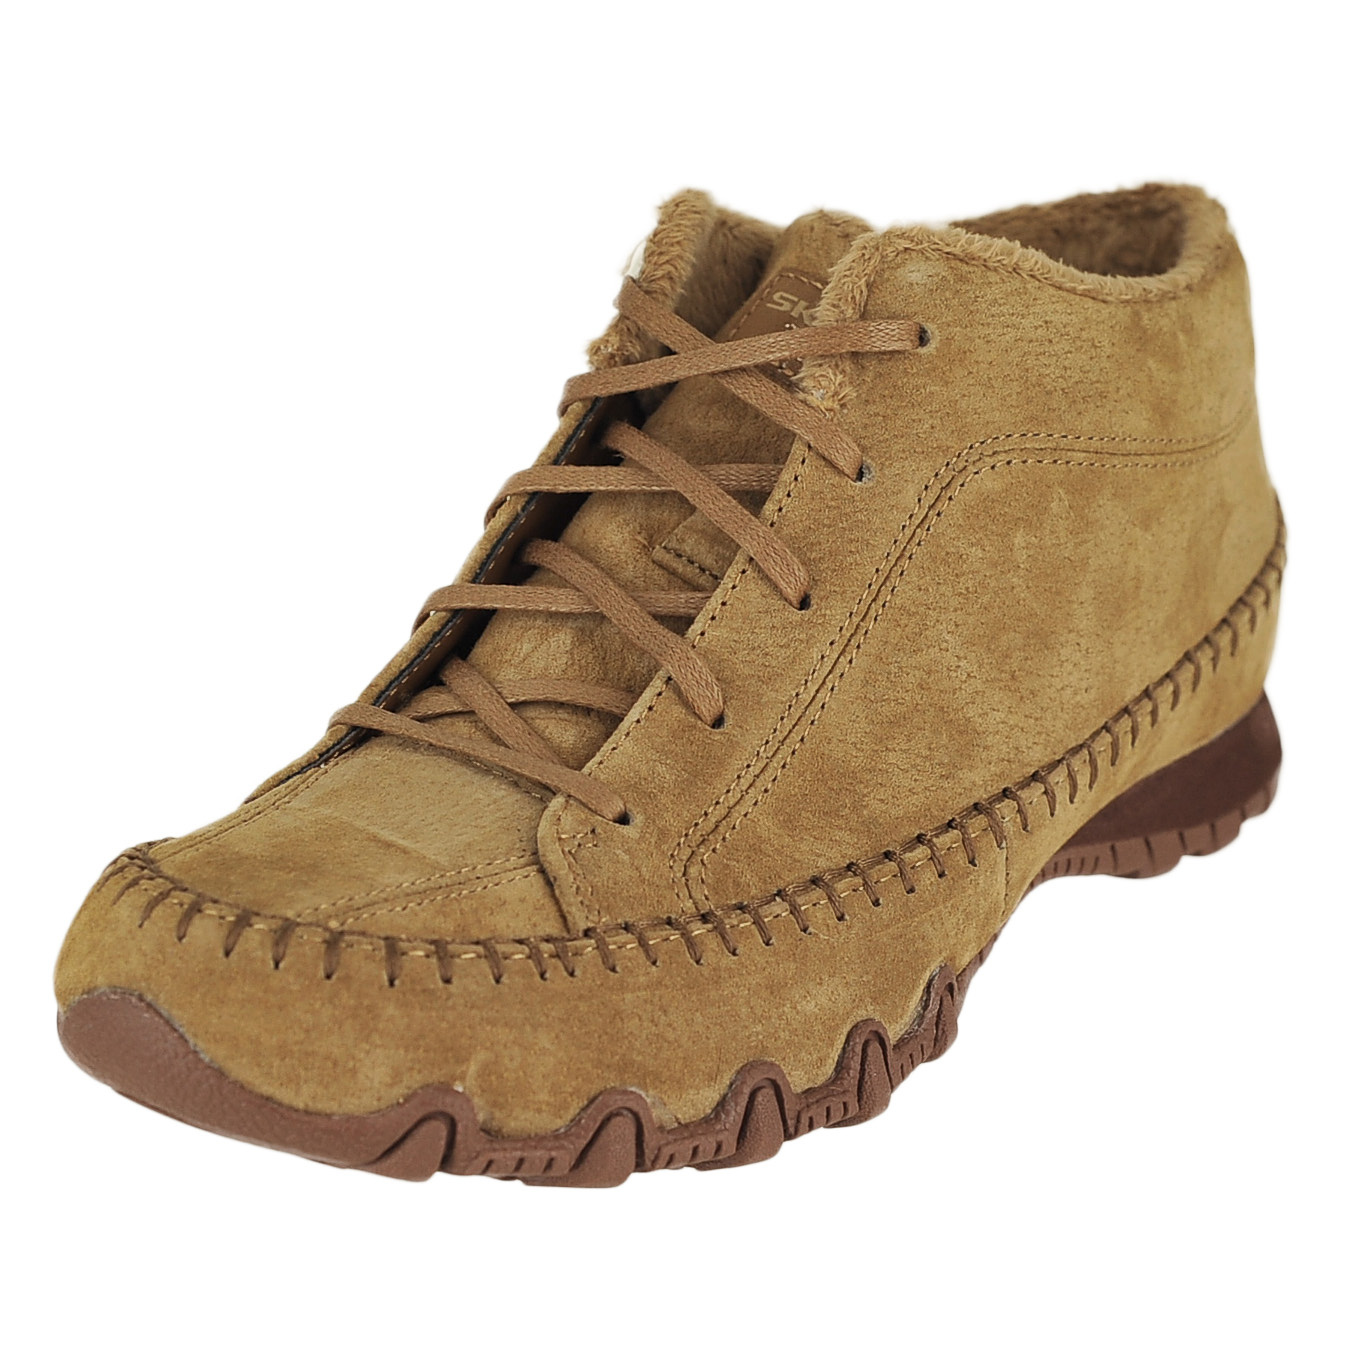 skechers bikers totem pole brown womens ankle hi boot size